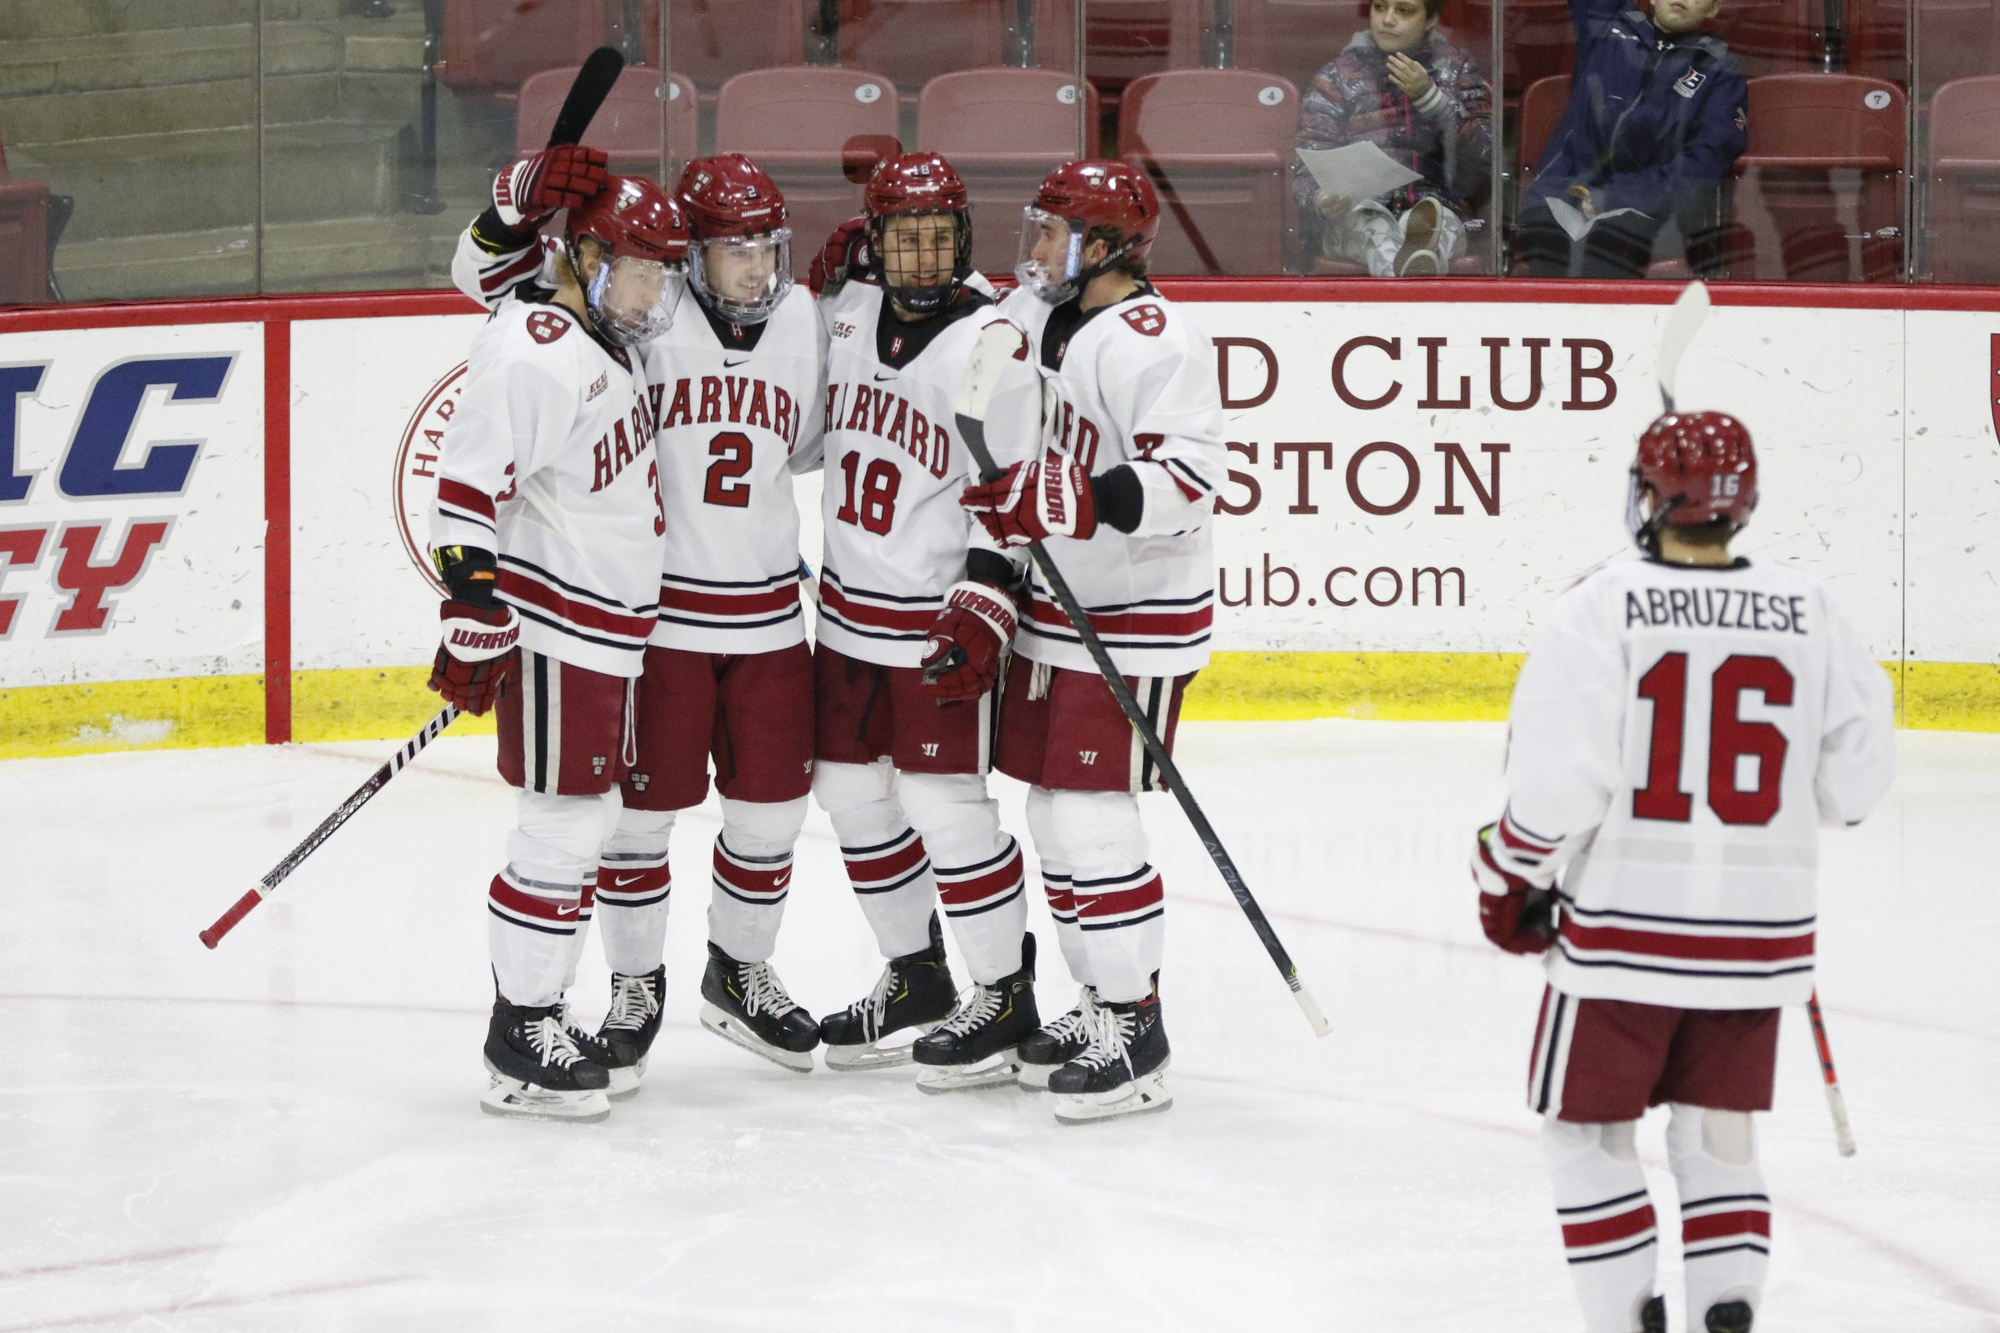 The Crimson offense comes together to celebrate a goal against St. Lawrence on March 7, 2020. The players did not know it at the time, but the 7-1 victory over the Saints just a year ago remains Harvard's last game played.